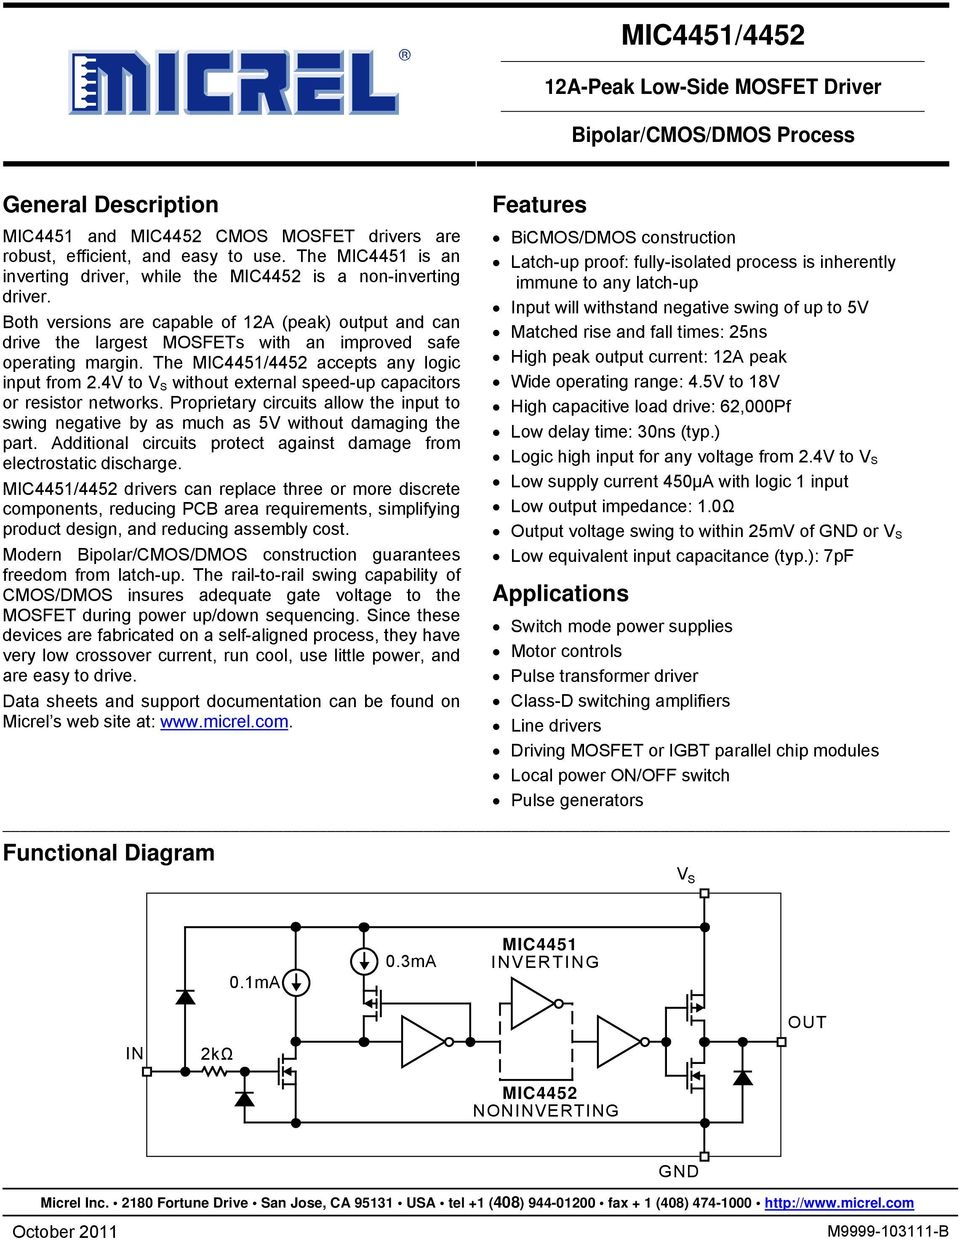 Mic4451 4452 General Description Features Applications Double Diffused Mos Dmos Both Versions Are Capable Of 12a Peak Output And Can Drive The Largest Mosfets